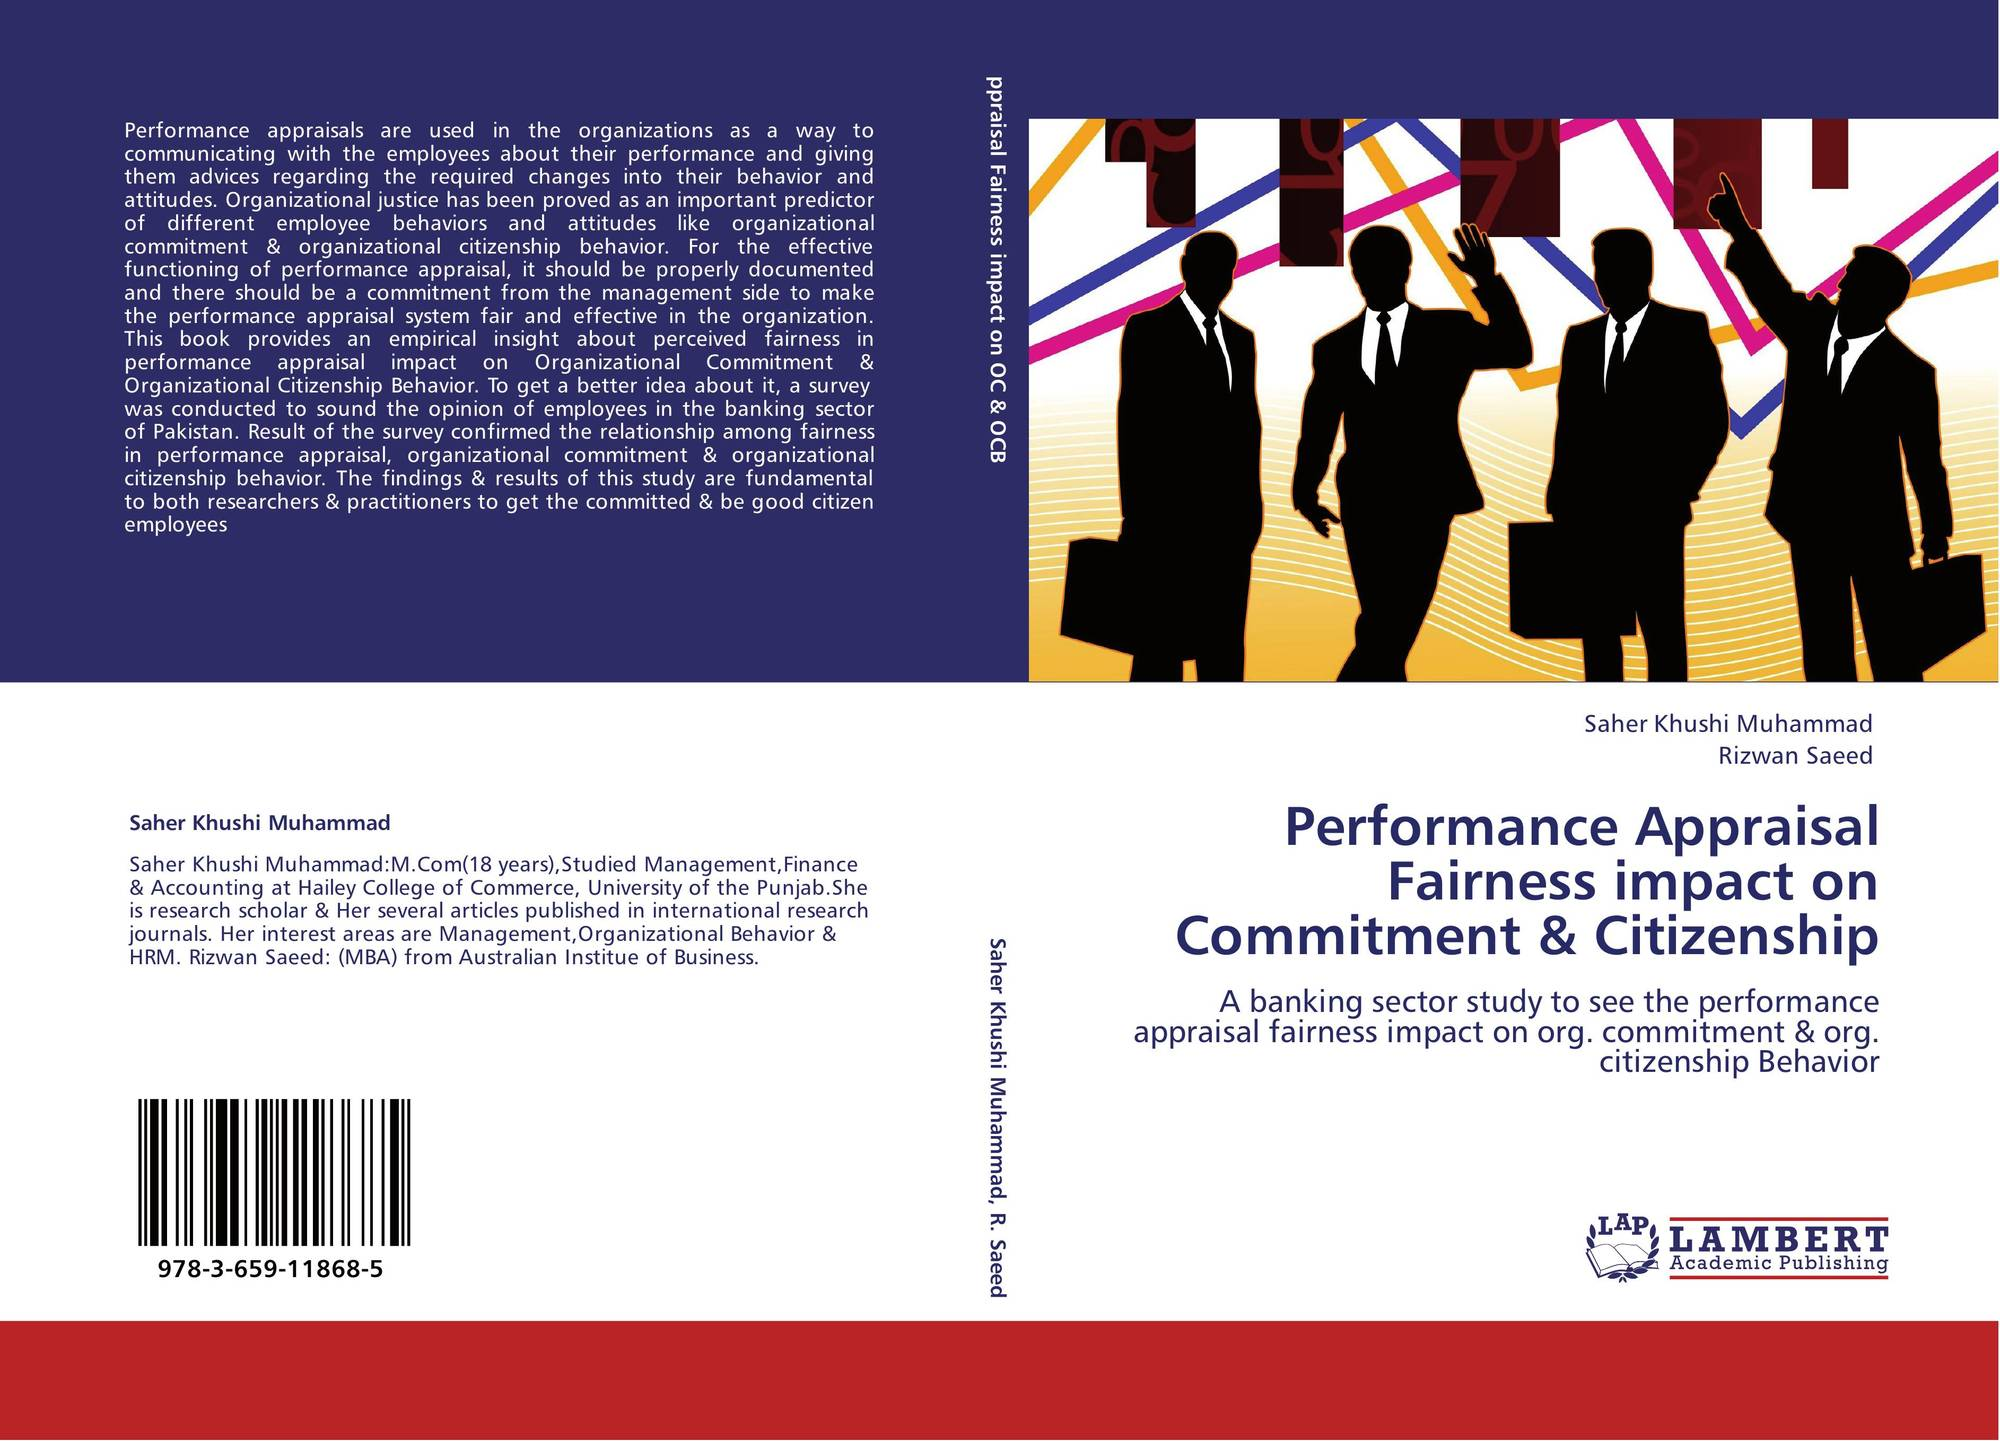 fairness of performance appraisals 1 uses a formalized system of performance appraisal 2 gathers fair and objective data throughout the evaluation period to use in employee's performance appraisals 3 uses the appraisal process to determine staff education and training needs 4 bases performance appraisal on documented standards 5 is as objective as possible in performance.